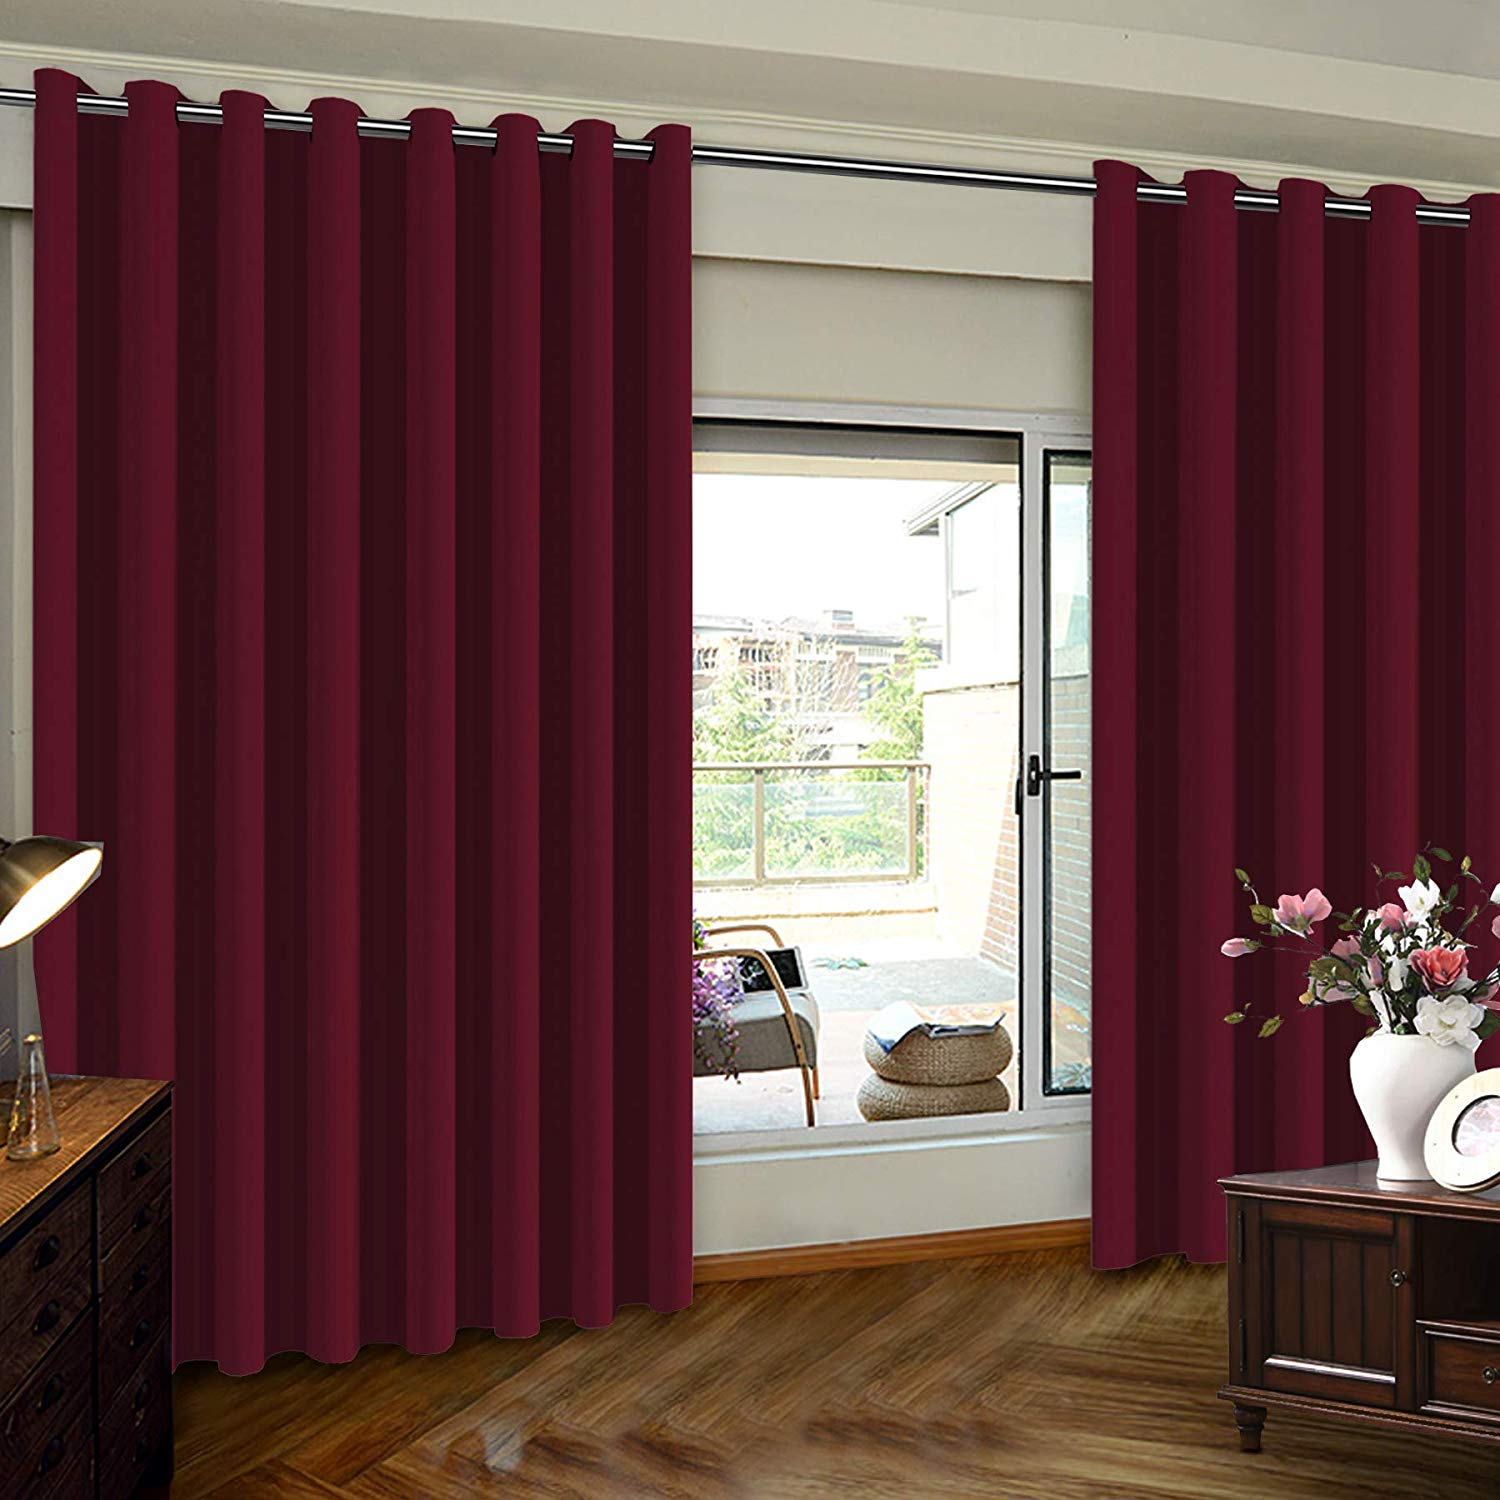 patio door curtain wide width drapes for living room blackout blinds for sliding door curtain burgundy extra wider 8 3ft wide x 7ft tall 100inch w